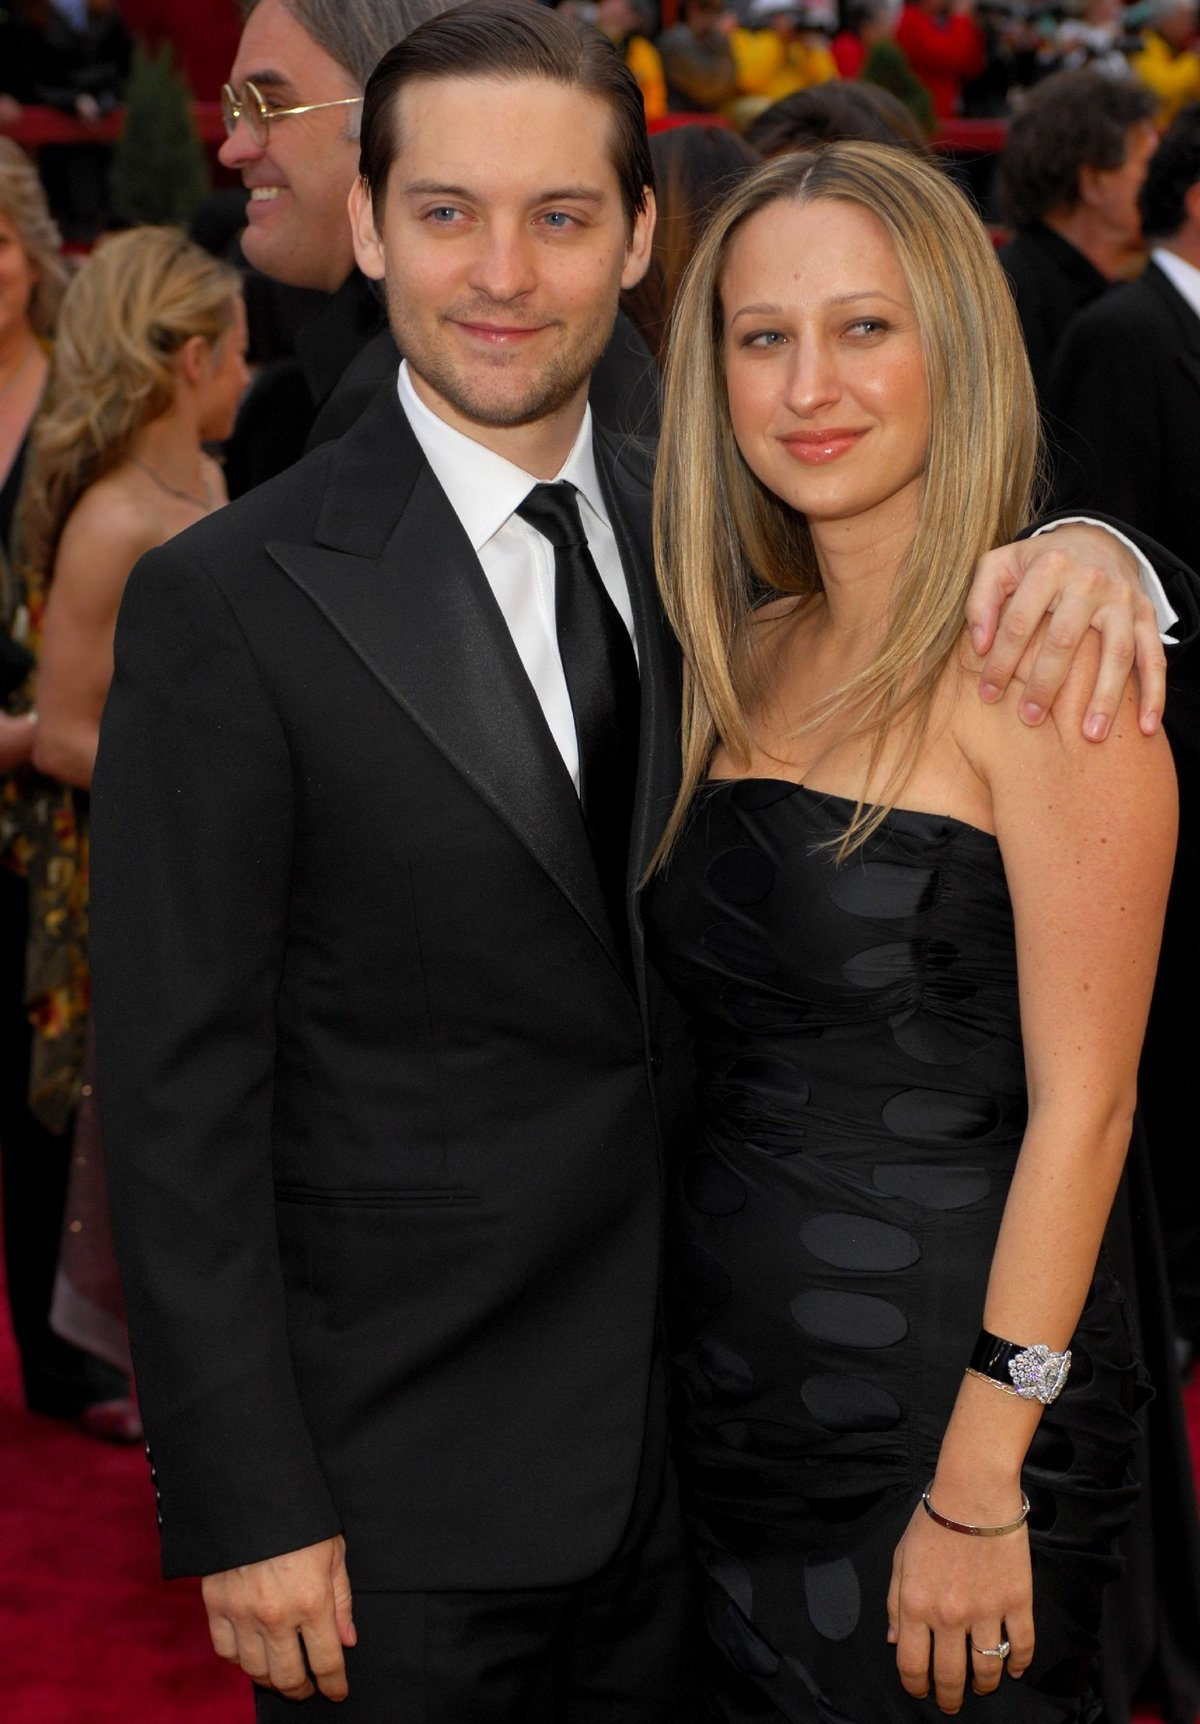 American actor and film producer Tobey Maguire and jewelry designer Jennifer Meyer filed for divorce in October 2020